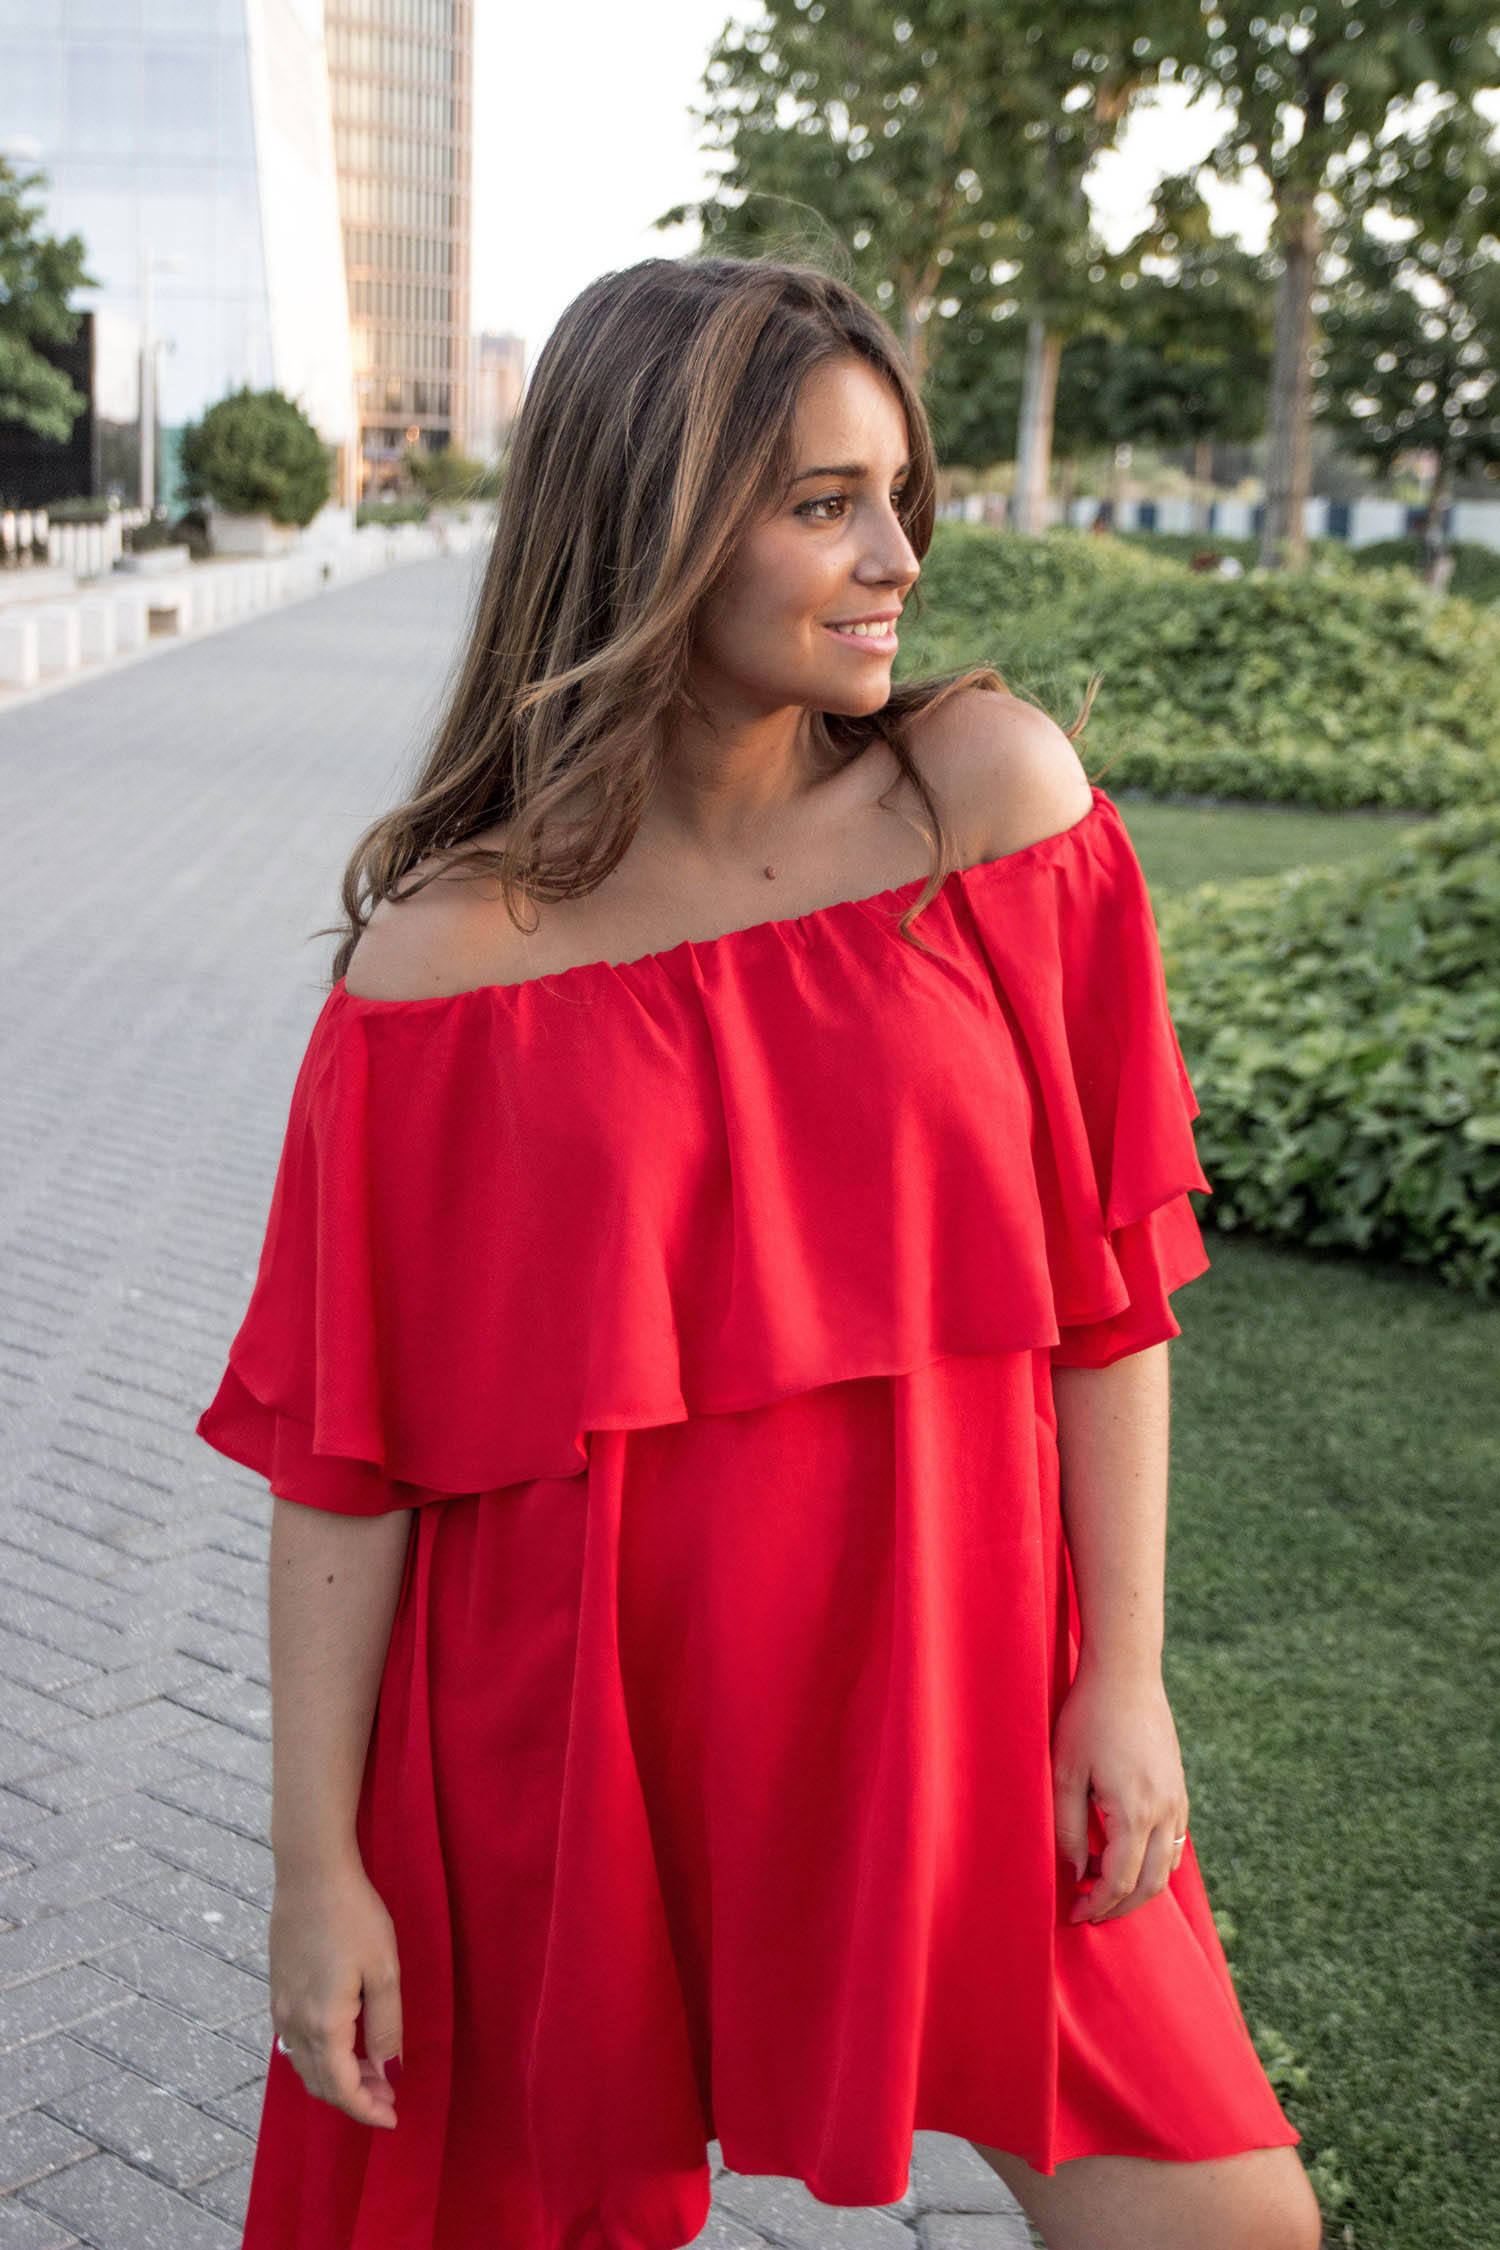 madeinstyle_she_in_red_dress_vestido_rojo_summer_closs_earrings-5